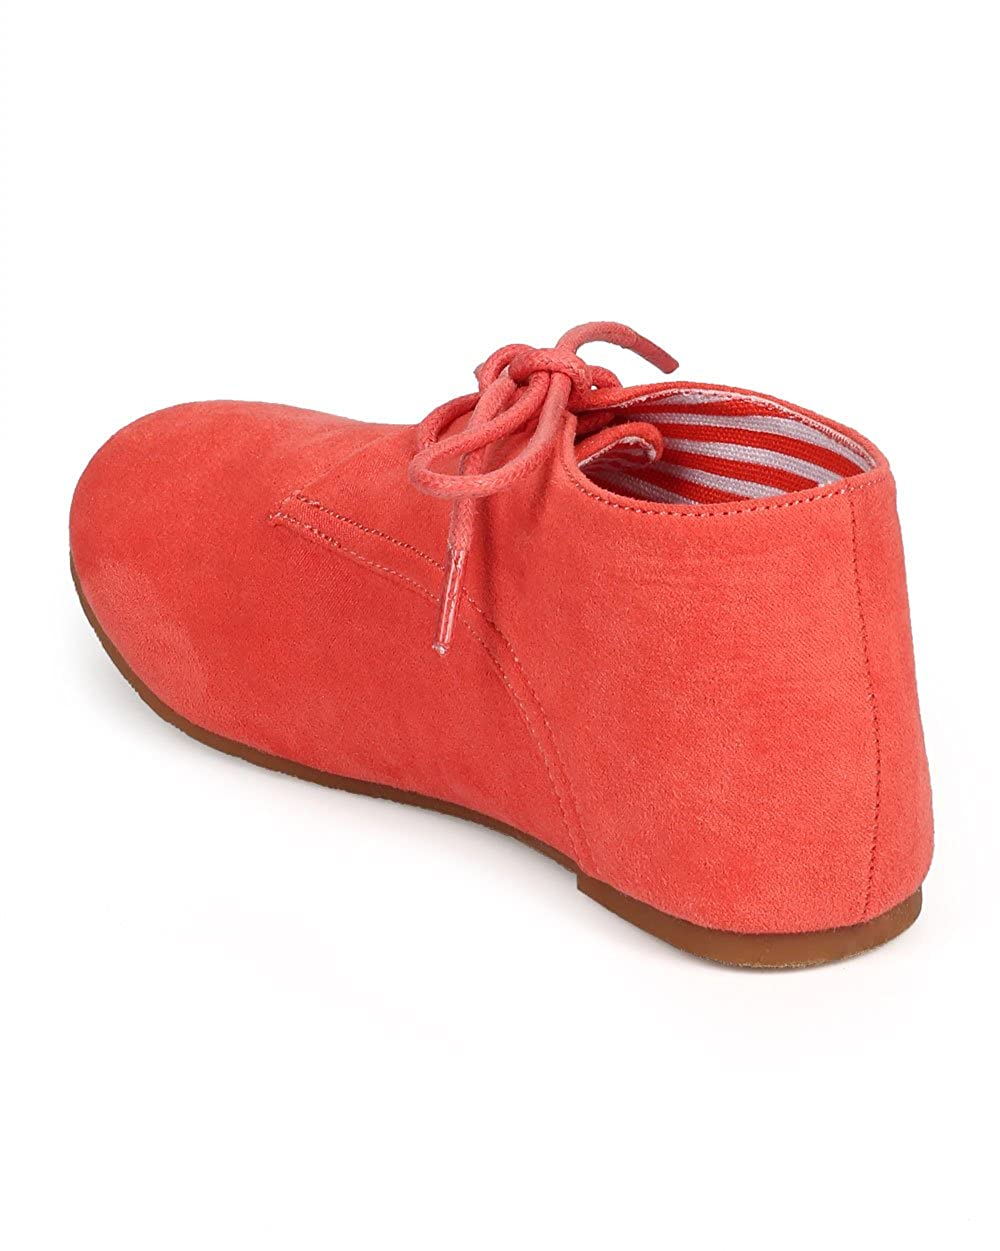 Size: Big Kid 4 DG66 Coral Suede Round Toe Lace Up Classic Ankle Oxford Flat Toddler//Little Girl//Big Girl